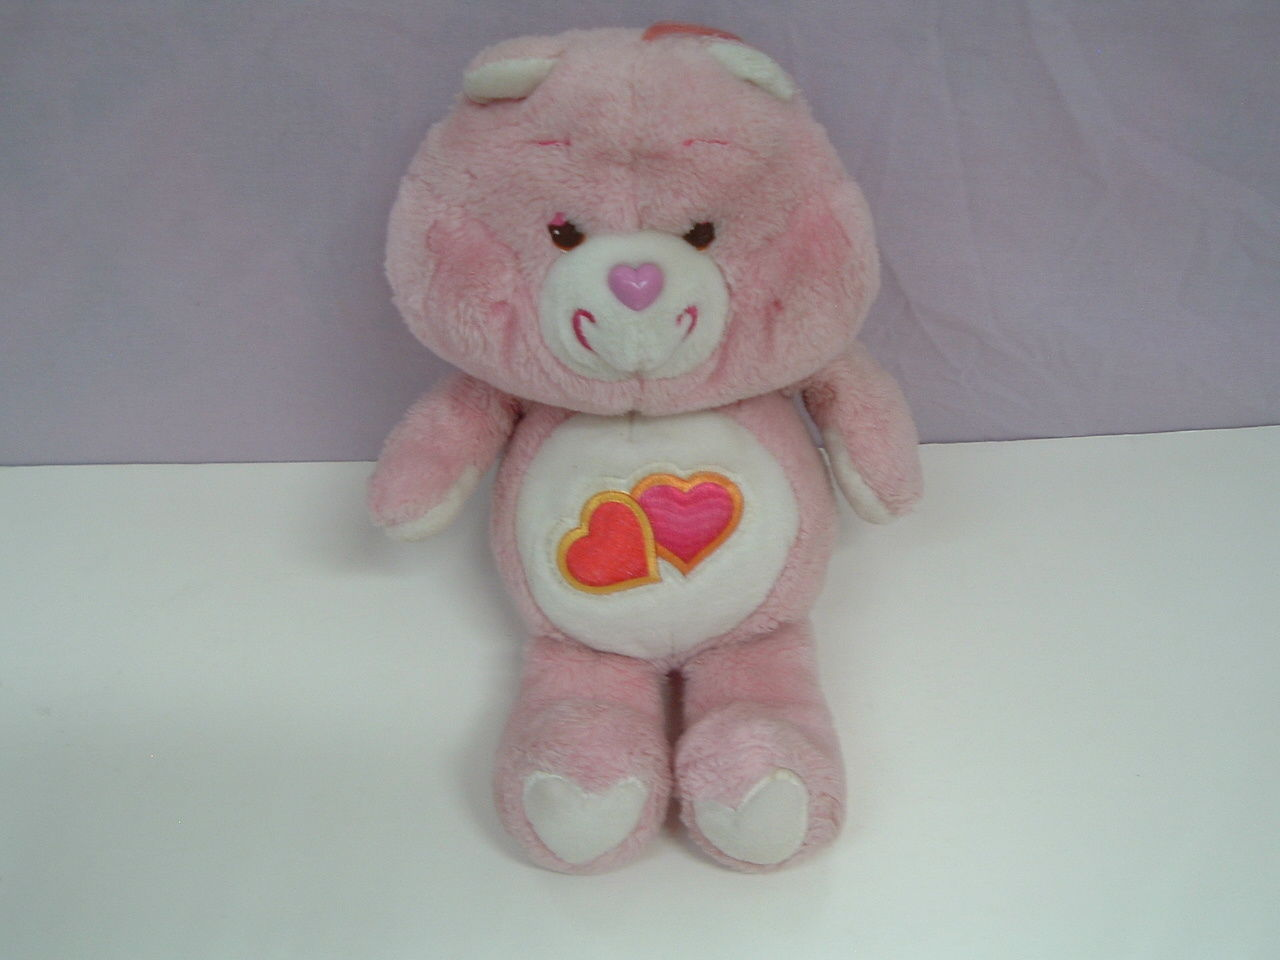 Vintage care bear Love a lot pink bear stuffed plush animal 13 inches